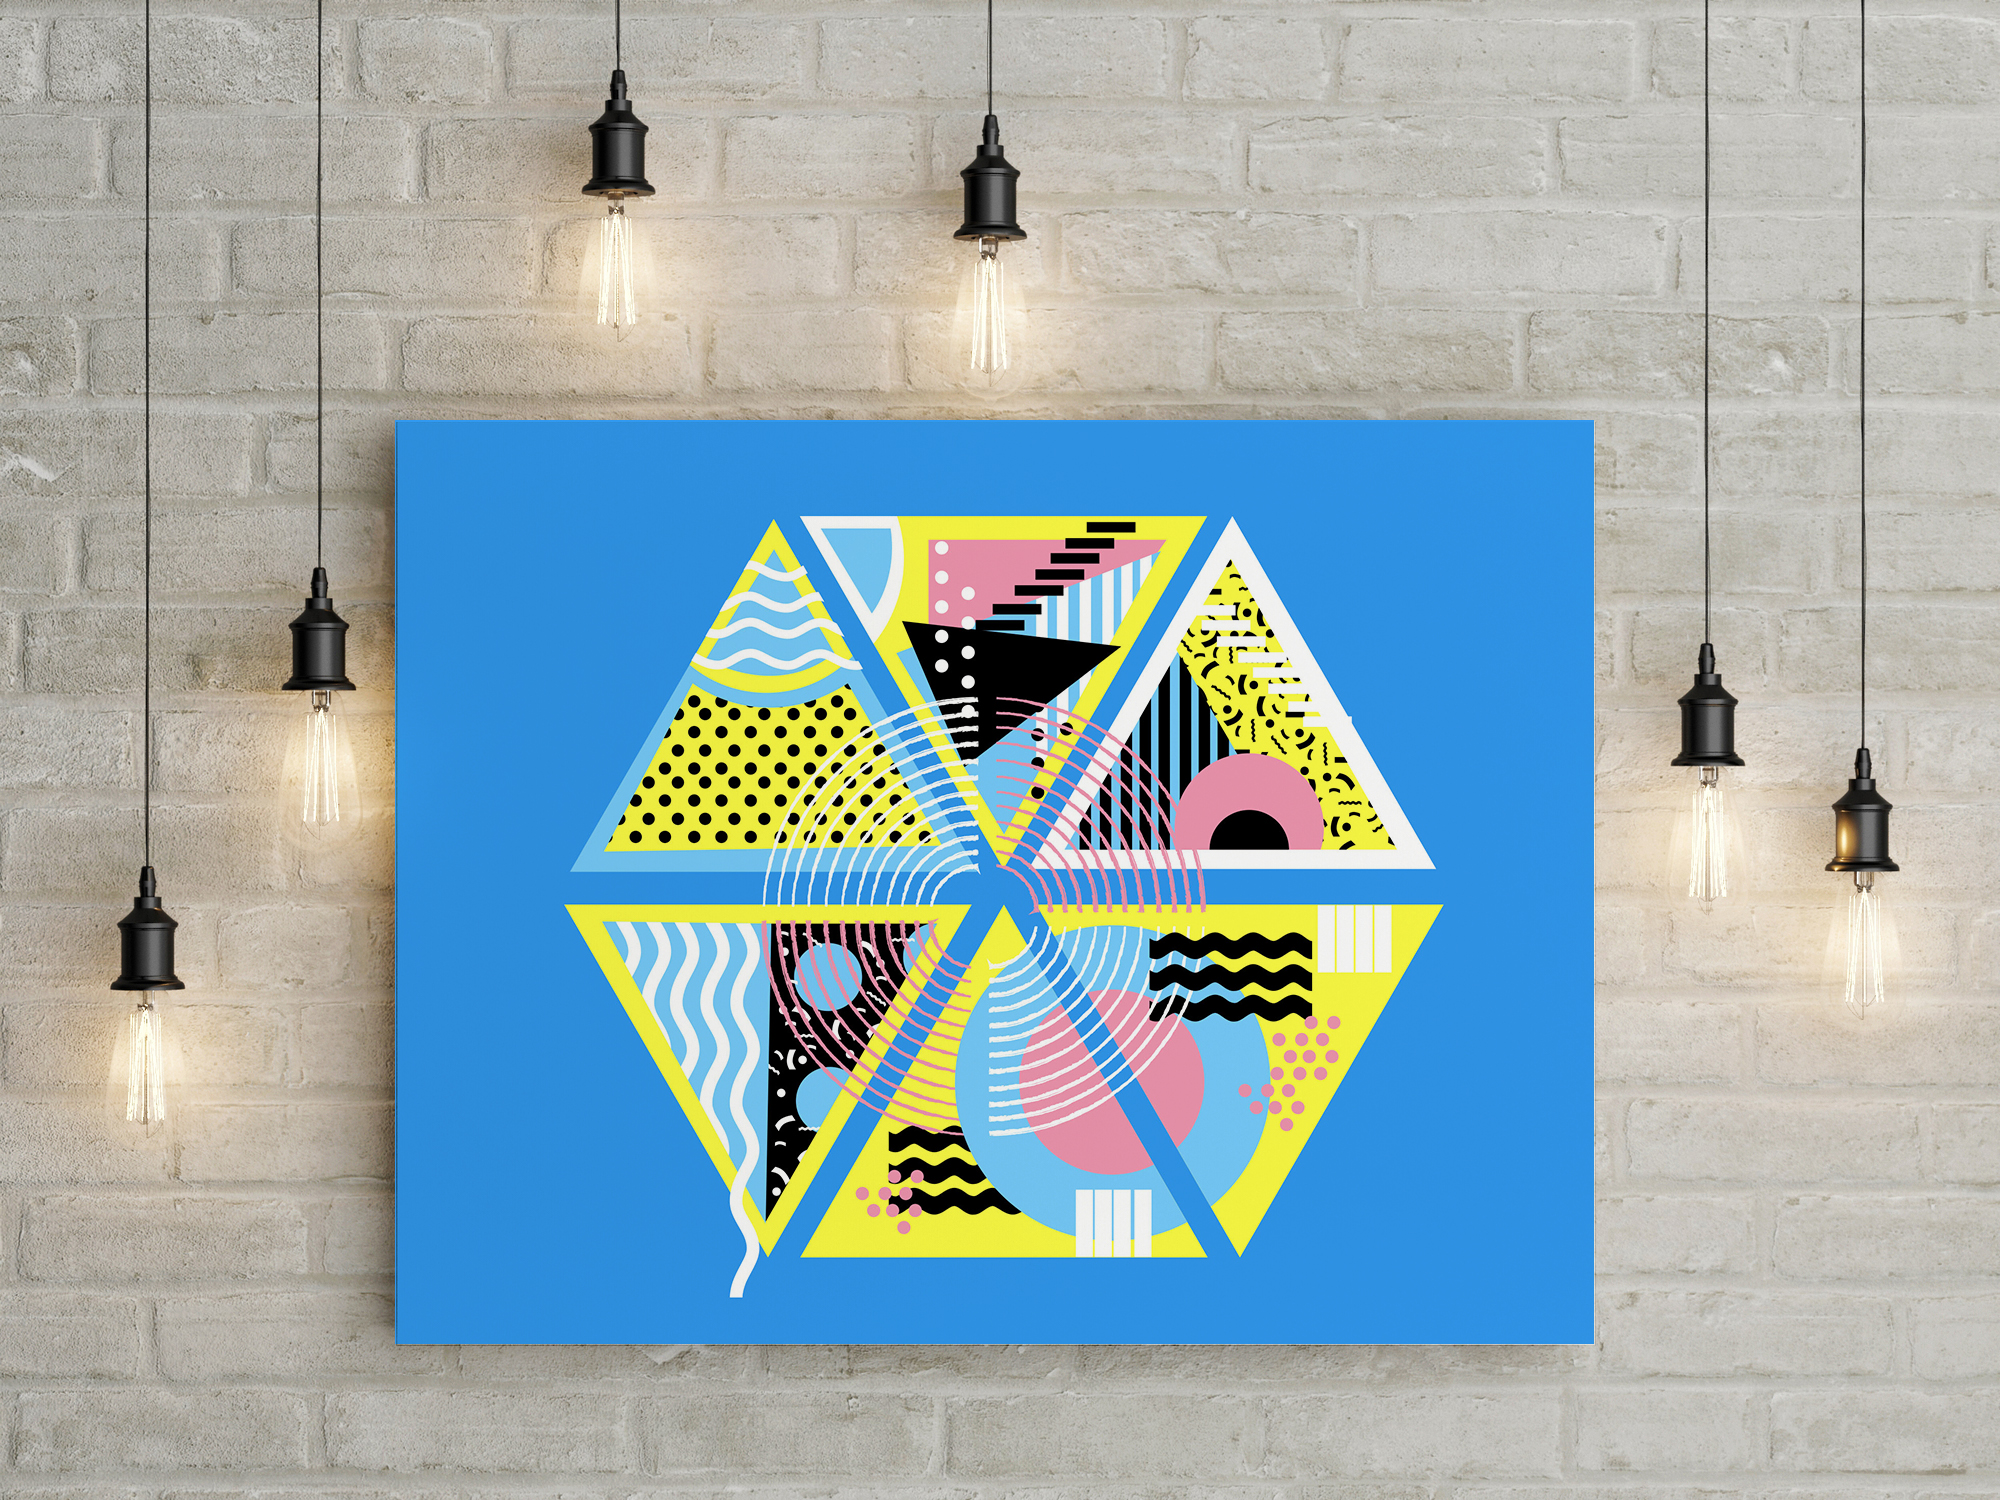 graphic design abstract color simple complex fun shape shapes lines line_social media_frame.jpg